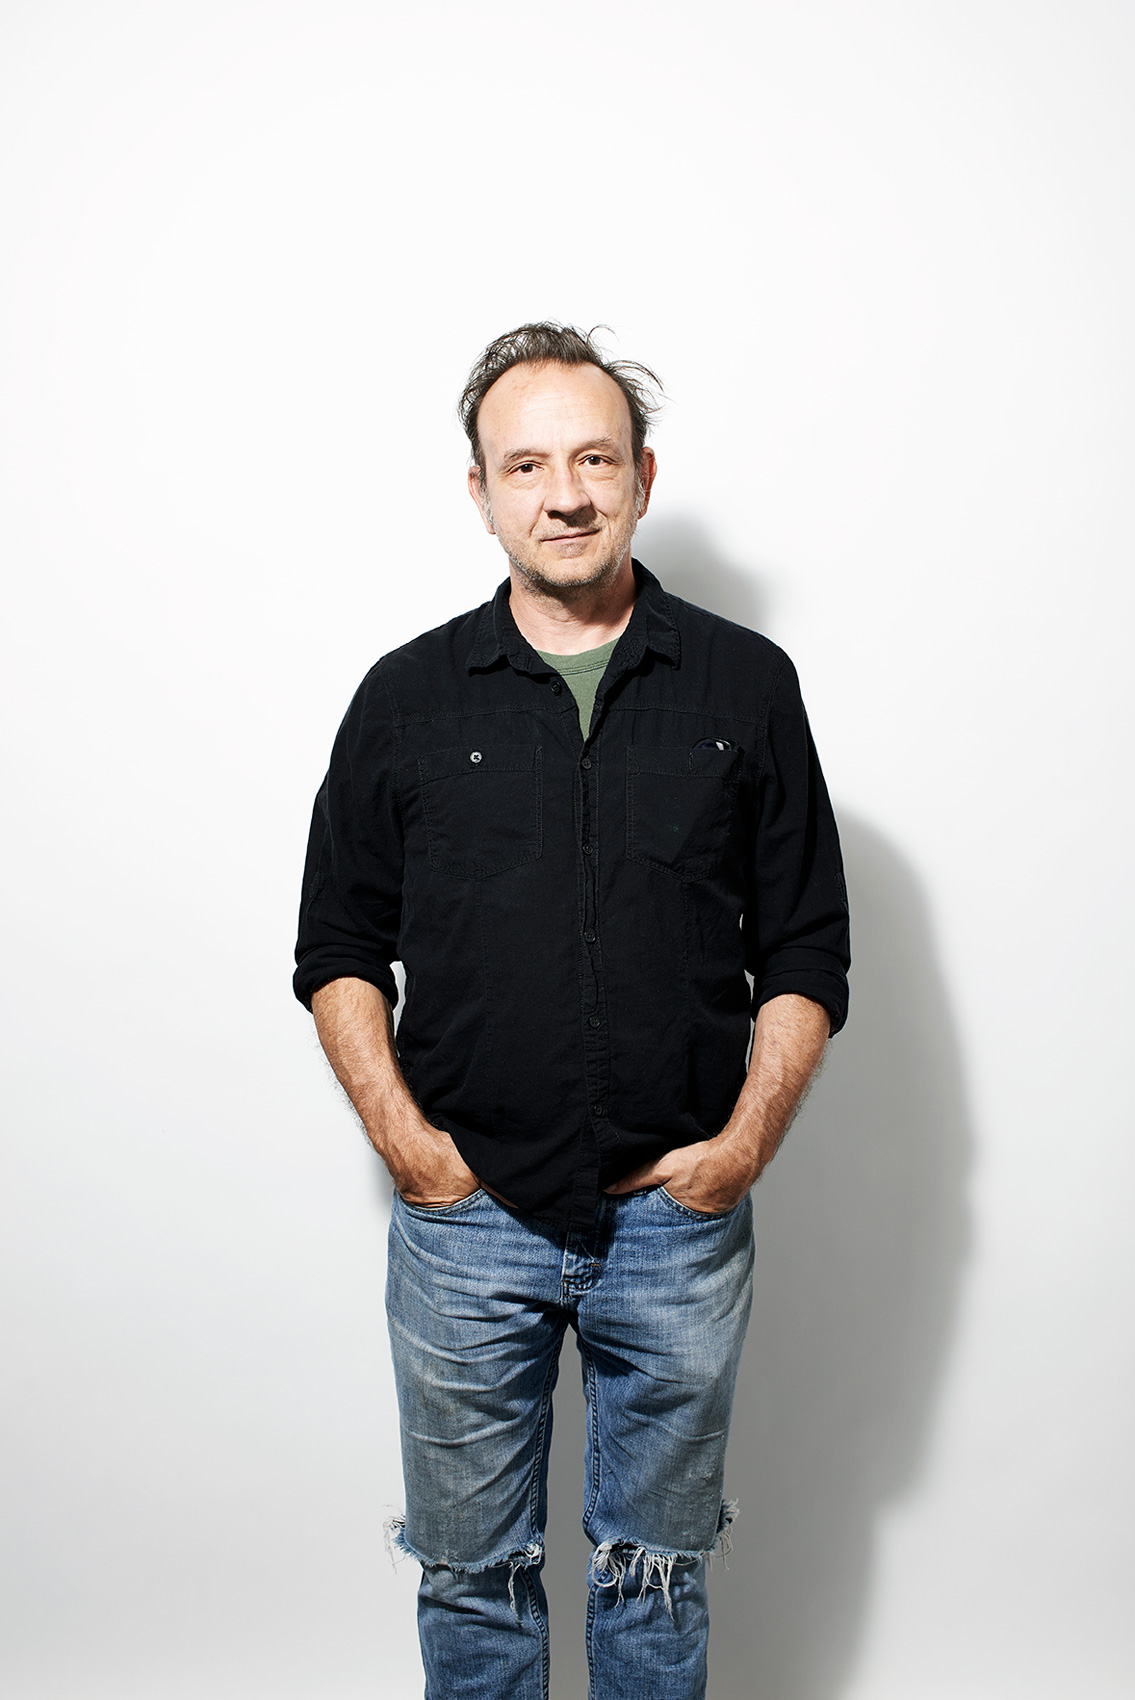 David Yow, The Jesus Lizard